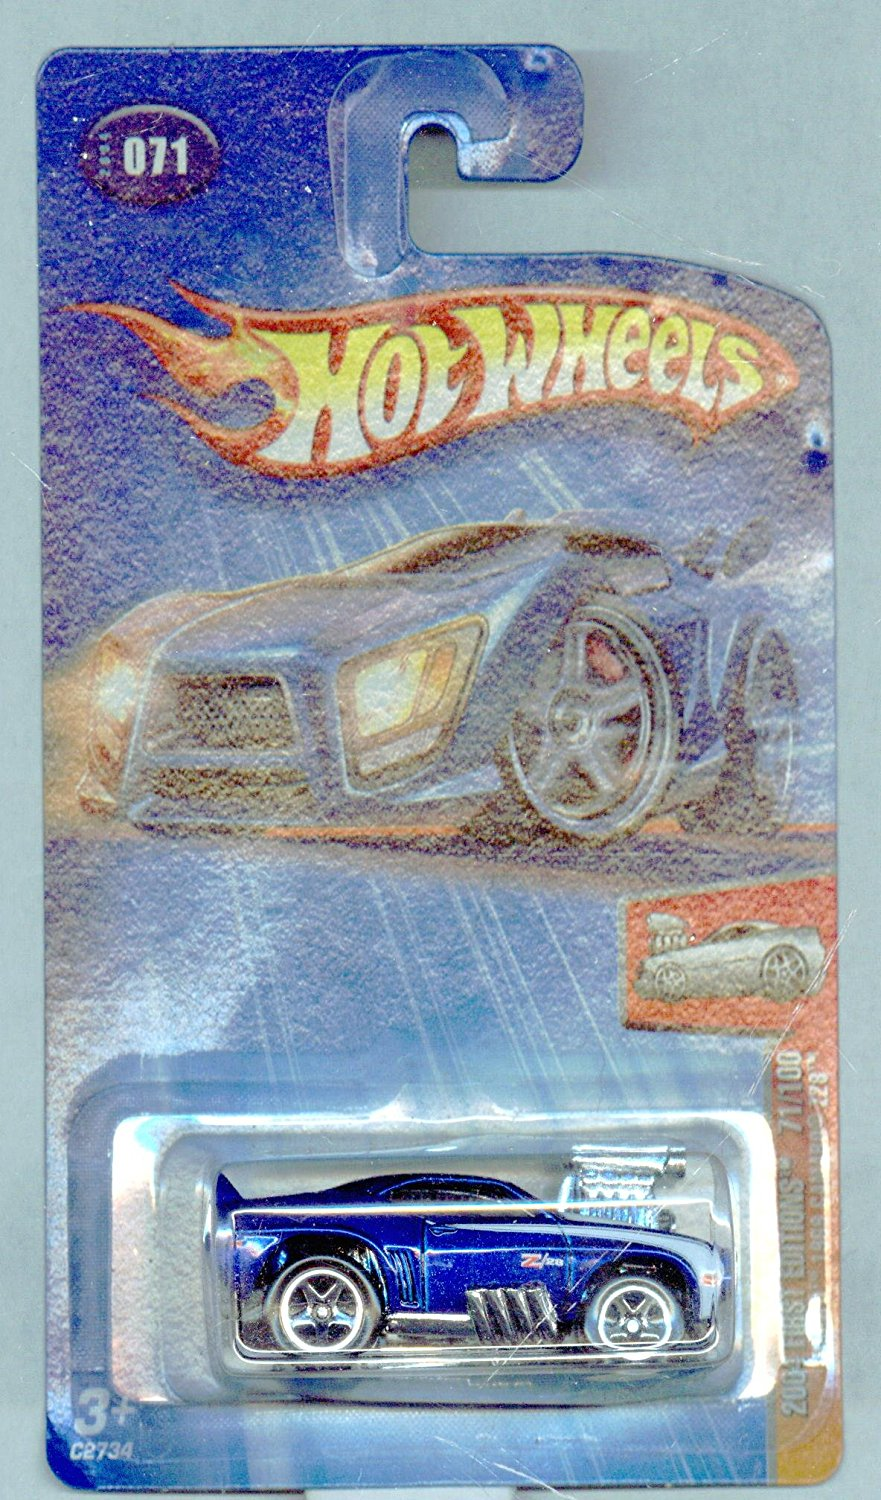 Hot Wheels 2004-071/100 First Editions Blue 'Tooned 1969 Camaro Z28 1:64 Scale